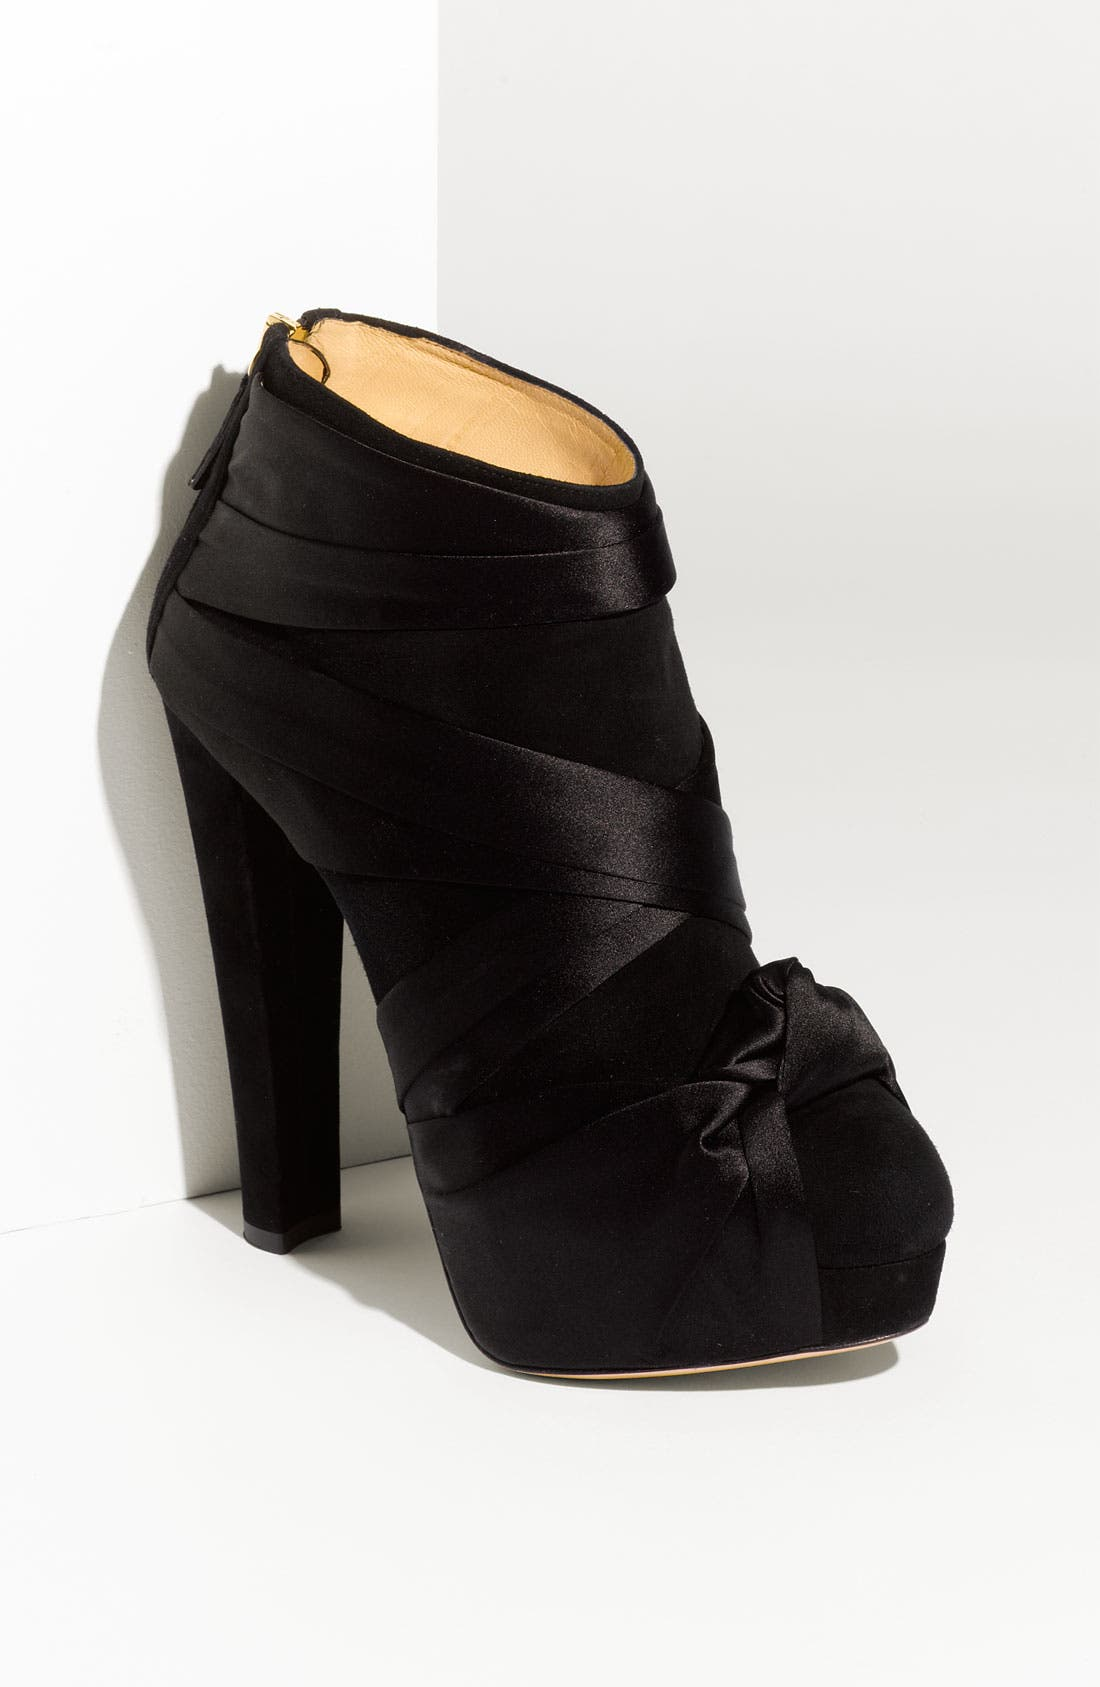 Main Image - Charlotte Olympia Satin Knot Suede Ankle Boot